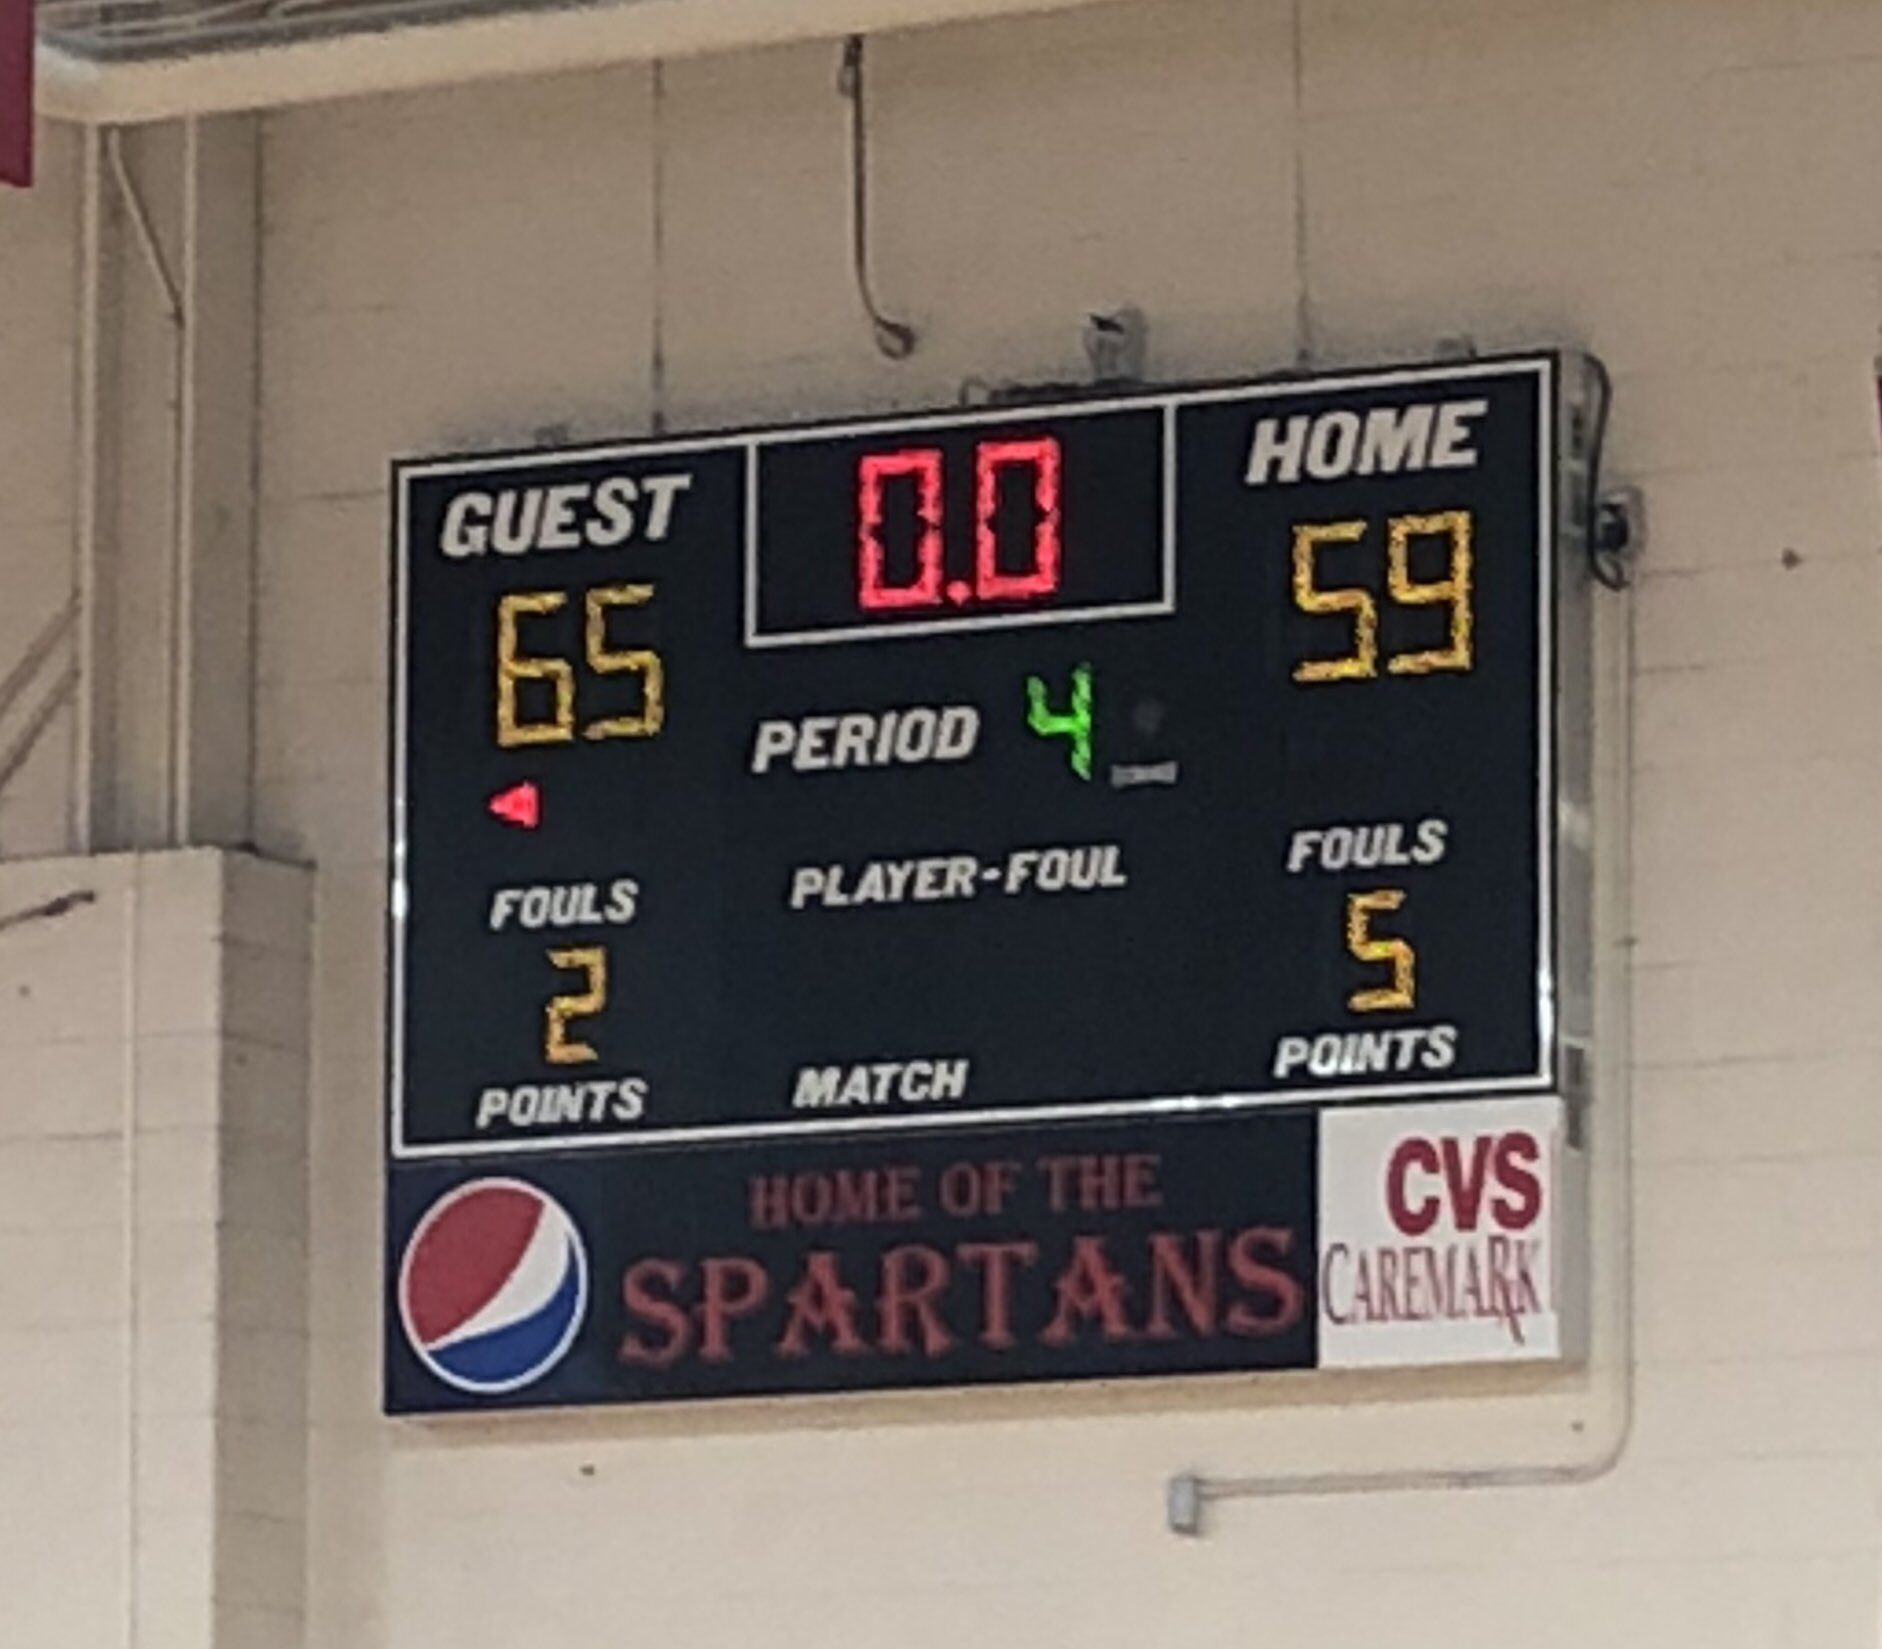 Wake County with the win  @ the Bull City vs Capital City Classic #NCfinest  # 15 https://t.co/L5KcSIp3p6